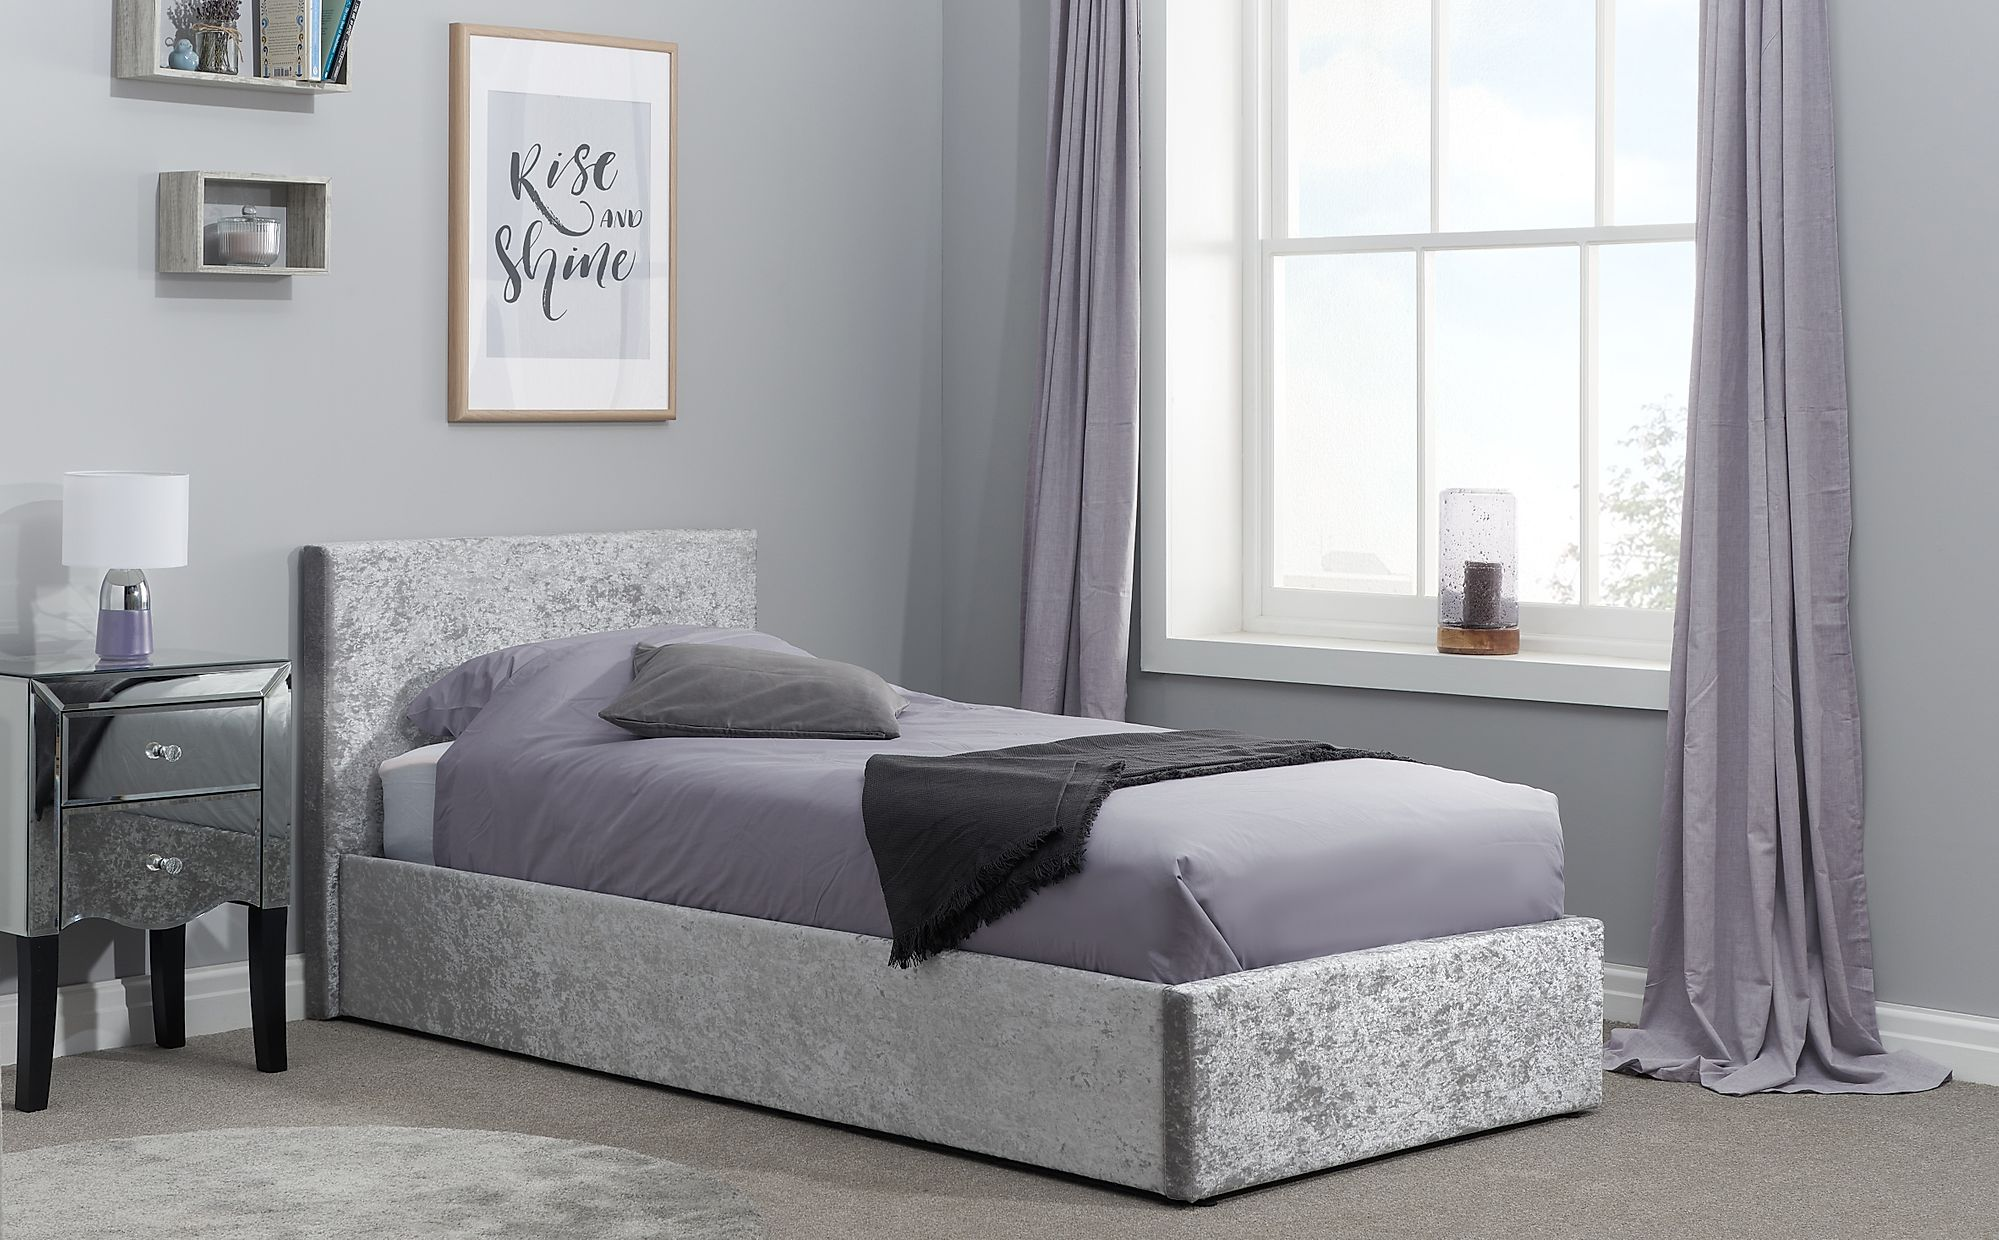 berlin silver crushed velvet ottoman single bed only 249. Black Bedroom Furniture Sets. Home Design Ideas